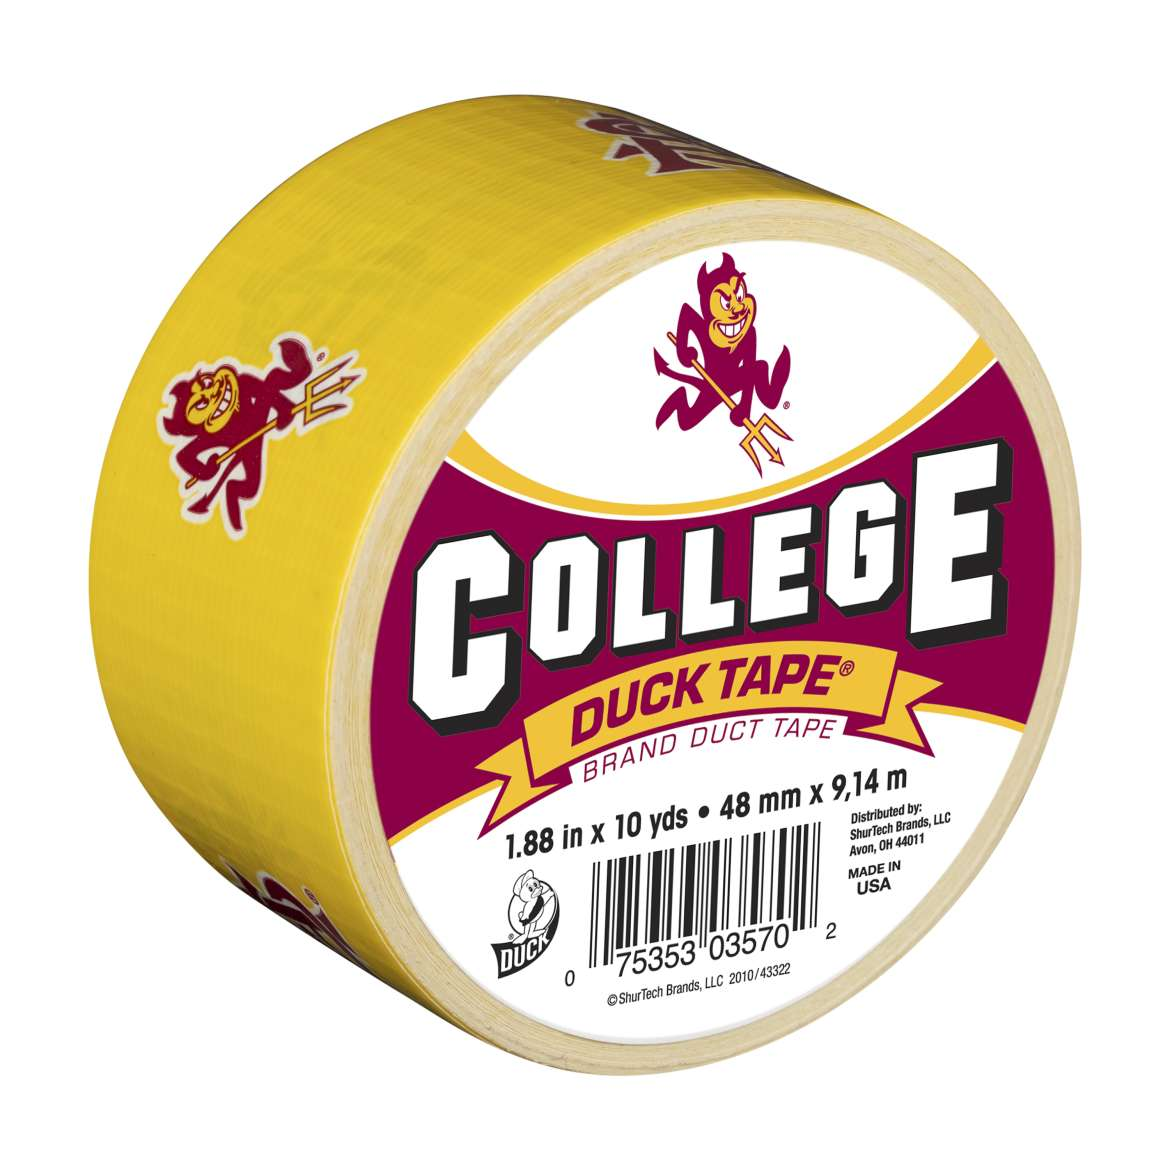 College Duck Tape Brand Duct Tape - Arizona State , 1.88 in. x 10 yd.